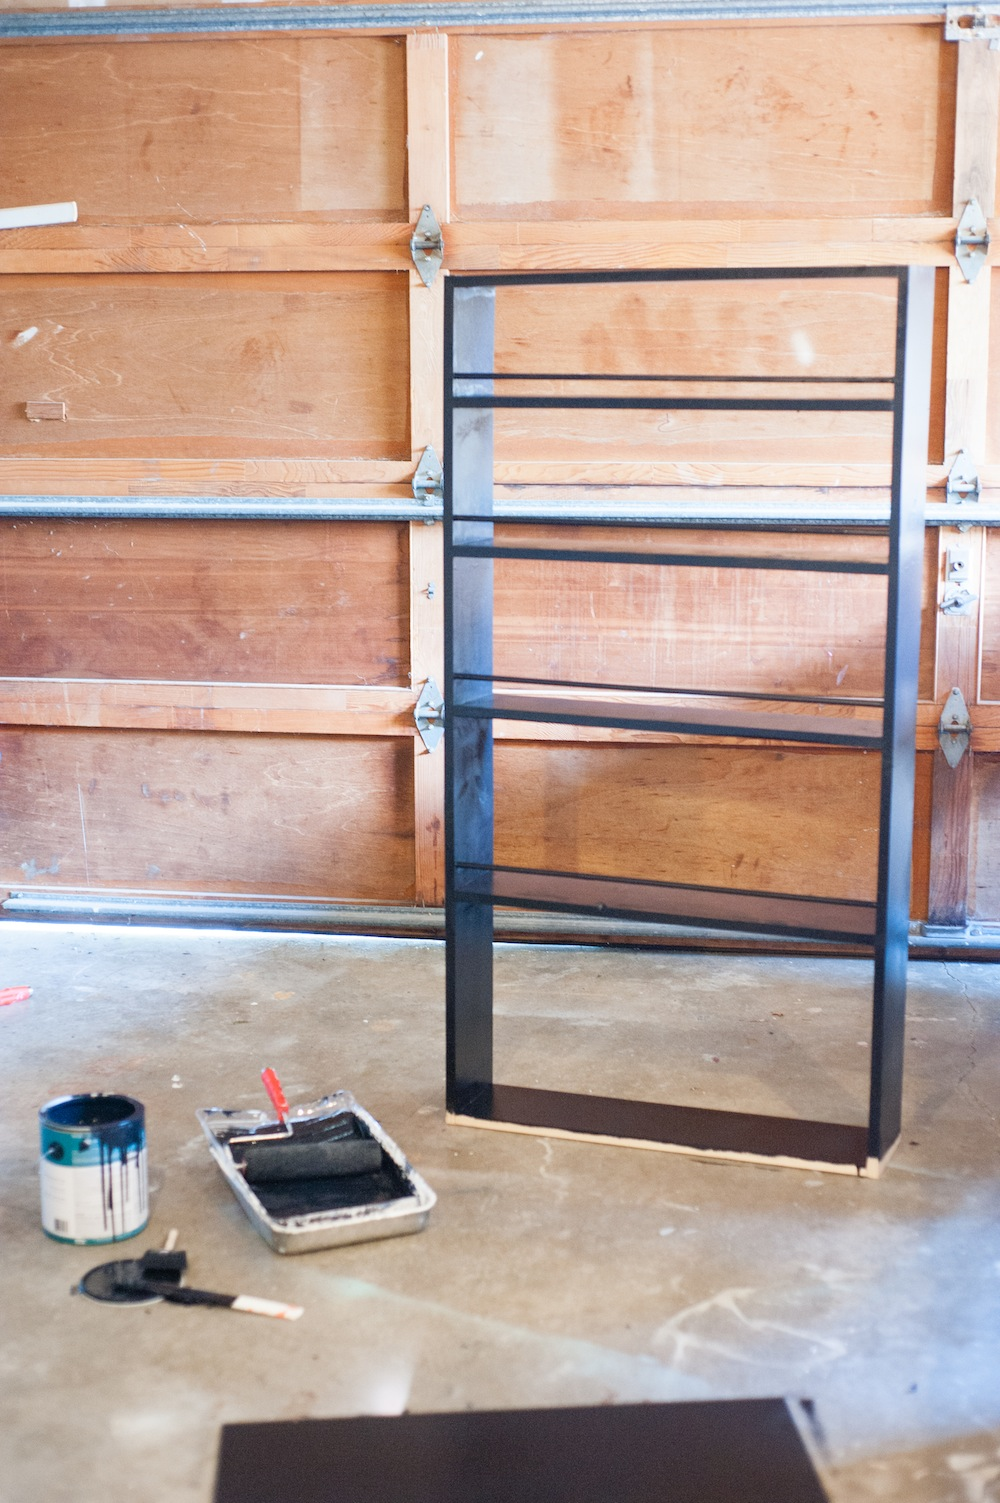 The space saving rolling pantry a diy tutorial zillow for Diy rolling pantry shelves